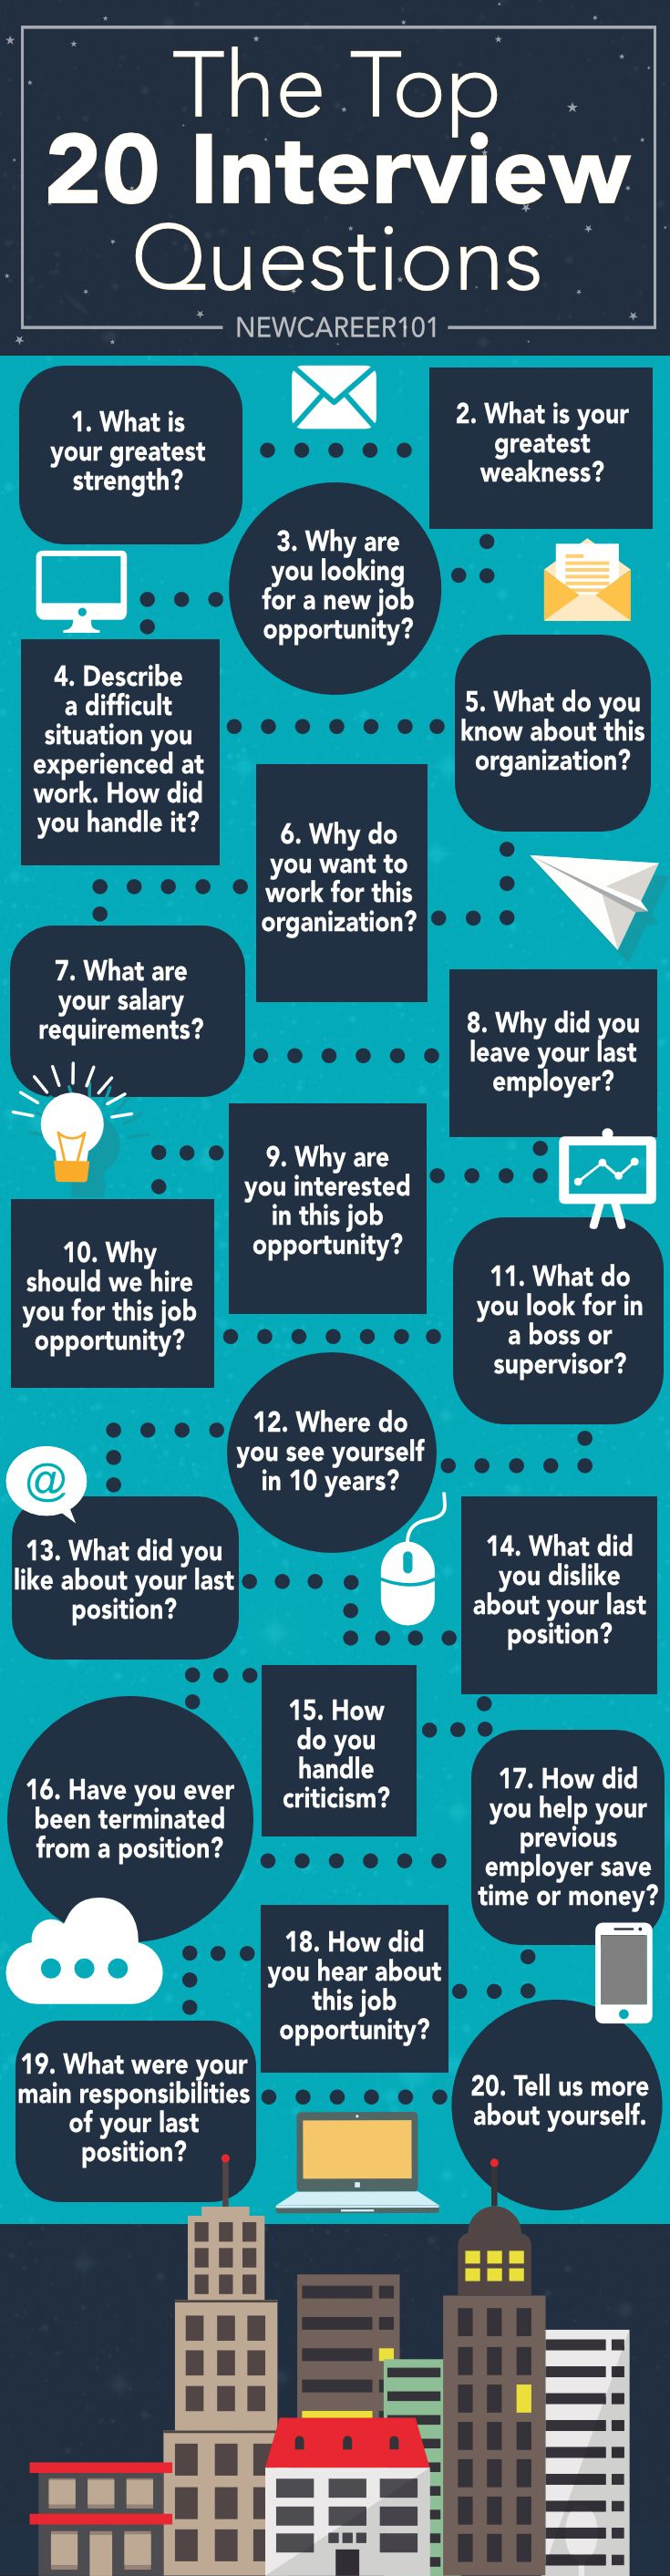 25 unique interview questions ideas on pinterest job interview